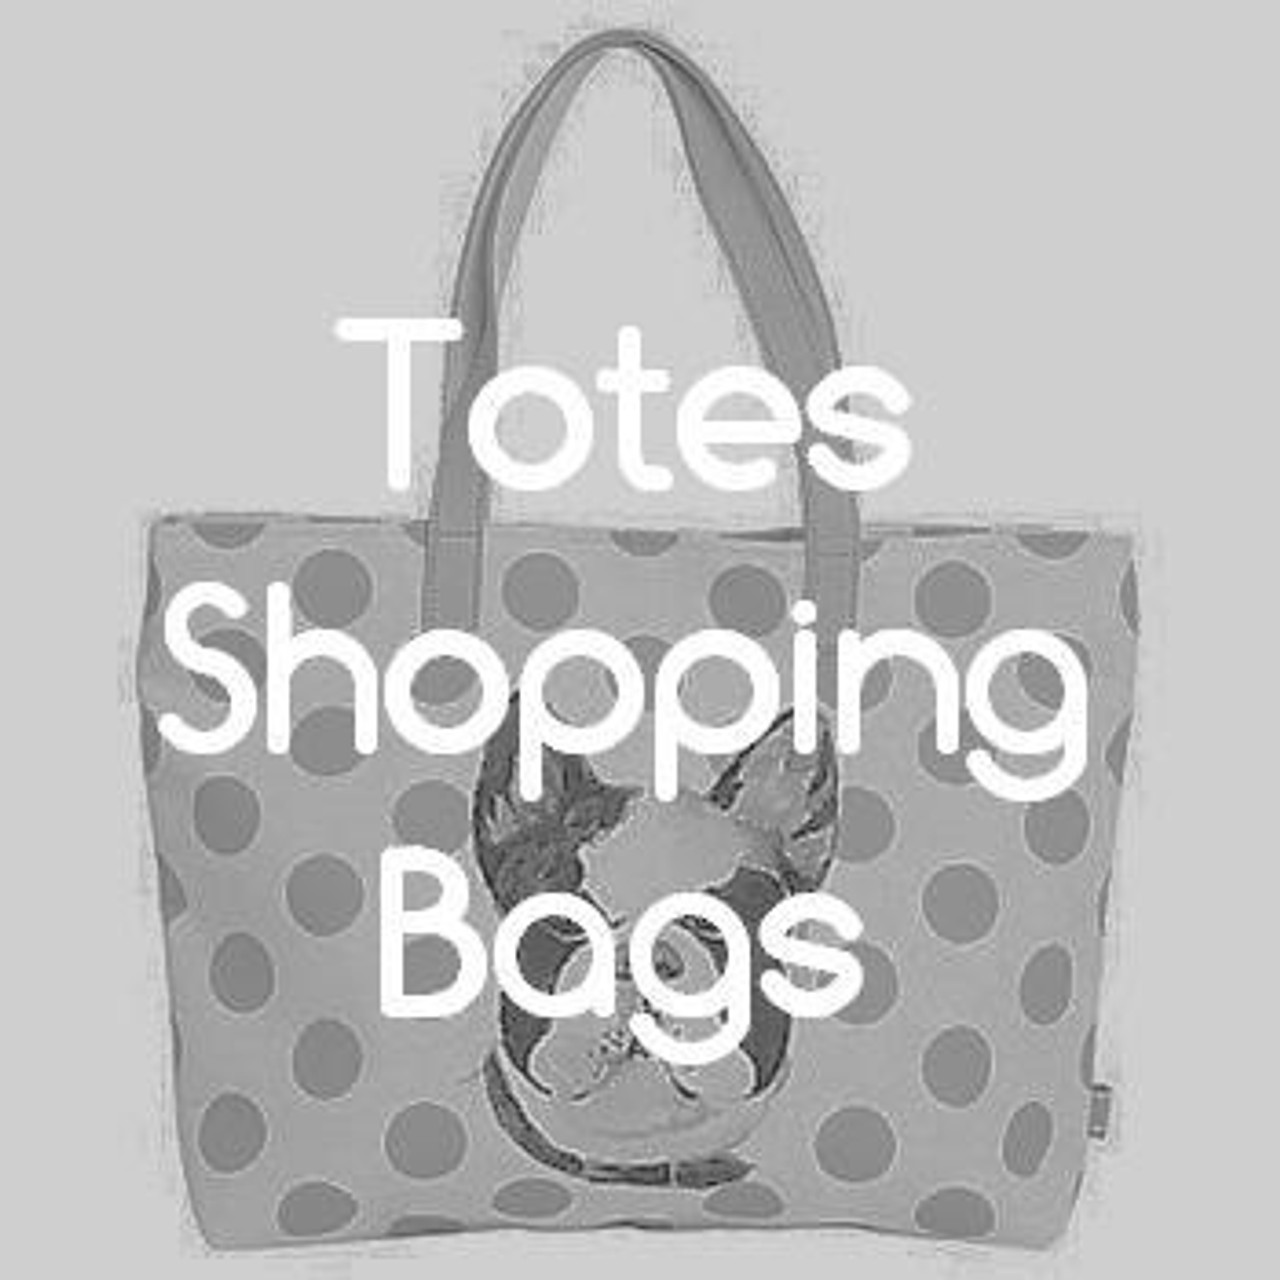 Totes - Shopping bags